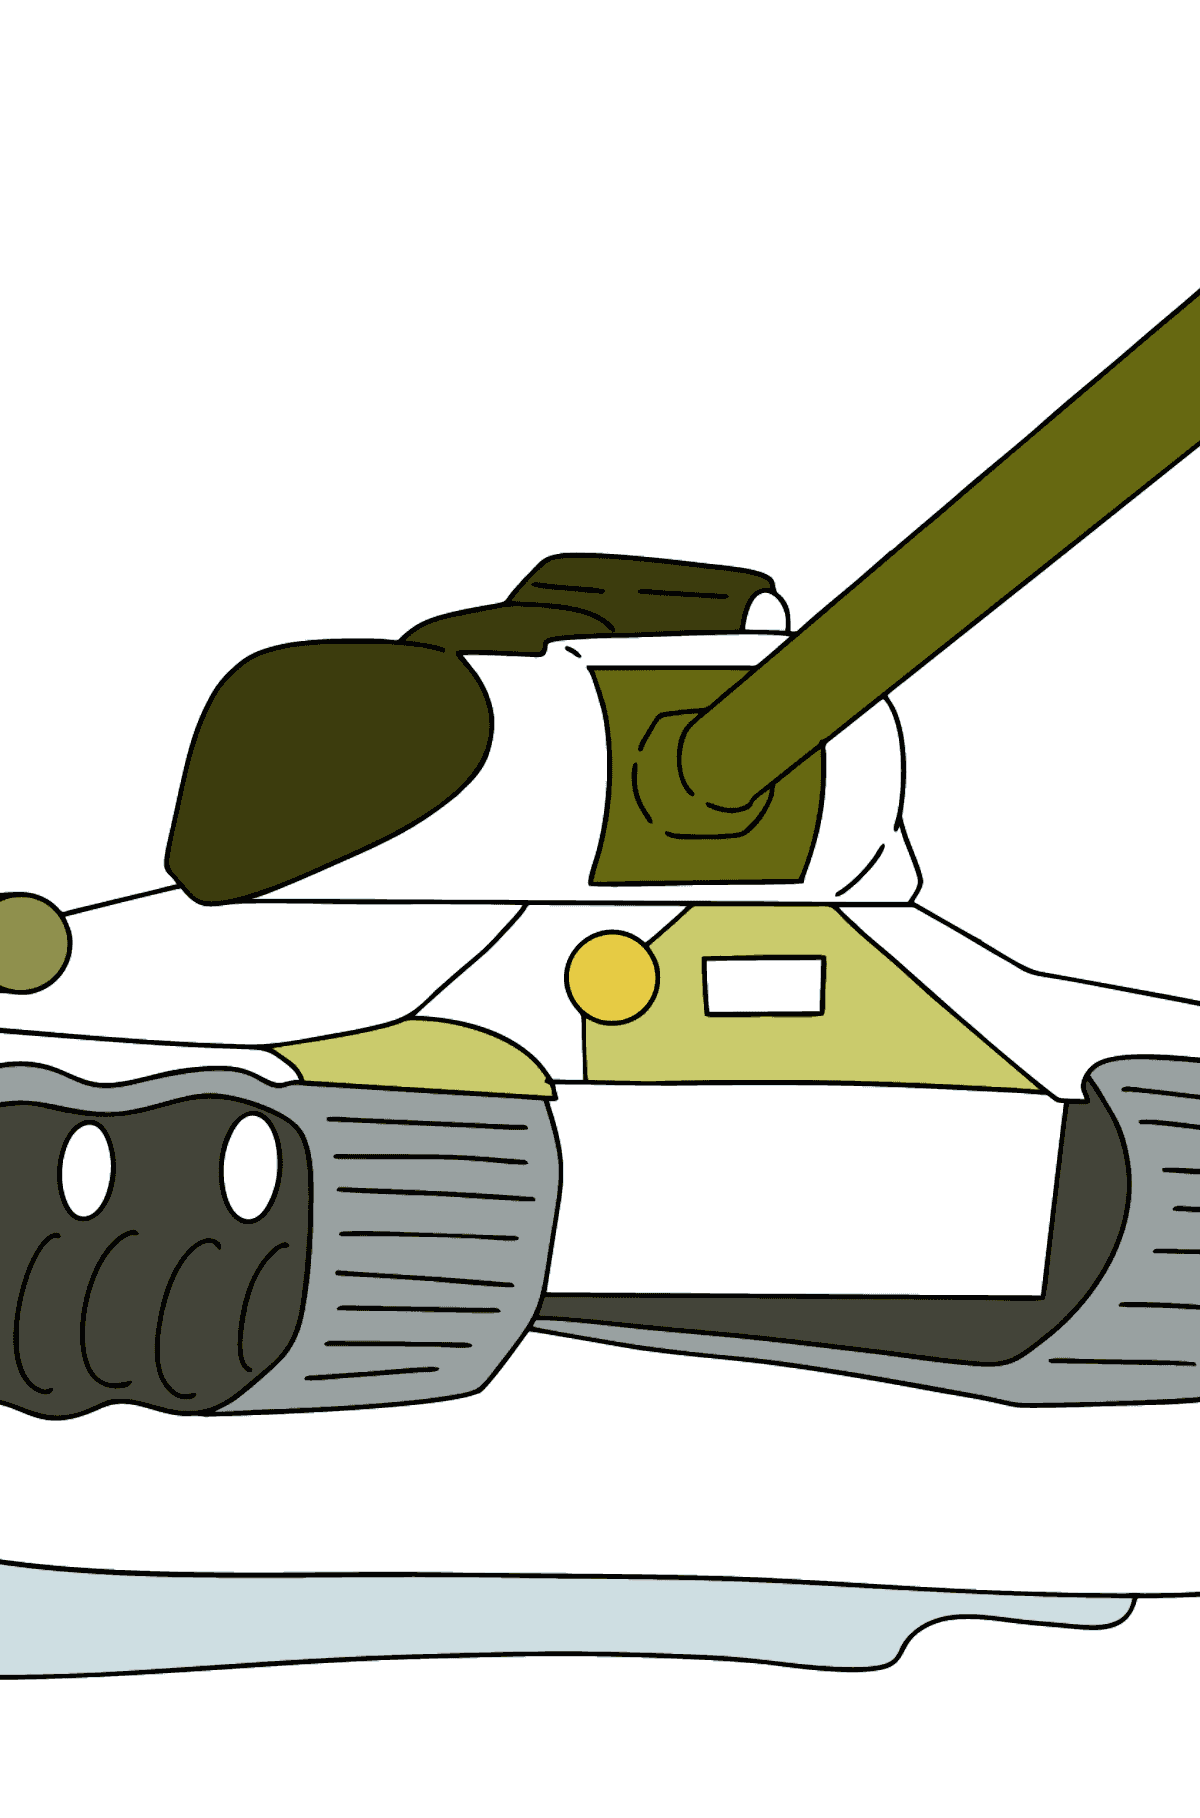 Tank IS 2 coloring page - Coloring Pages for Kids